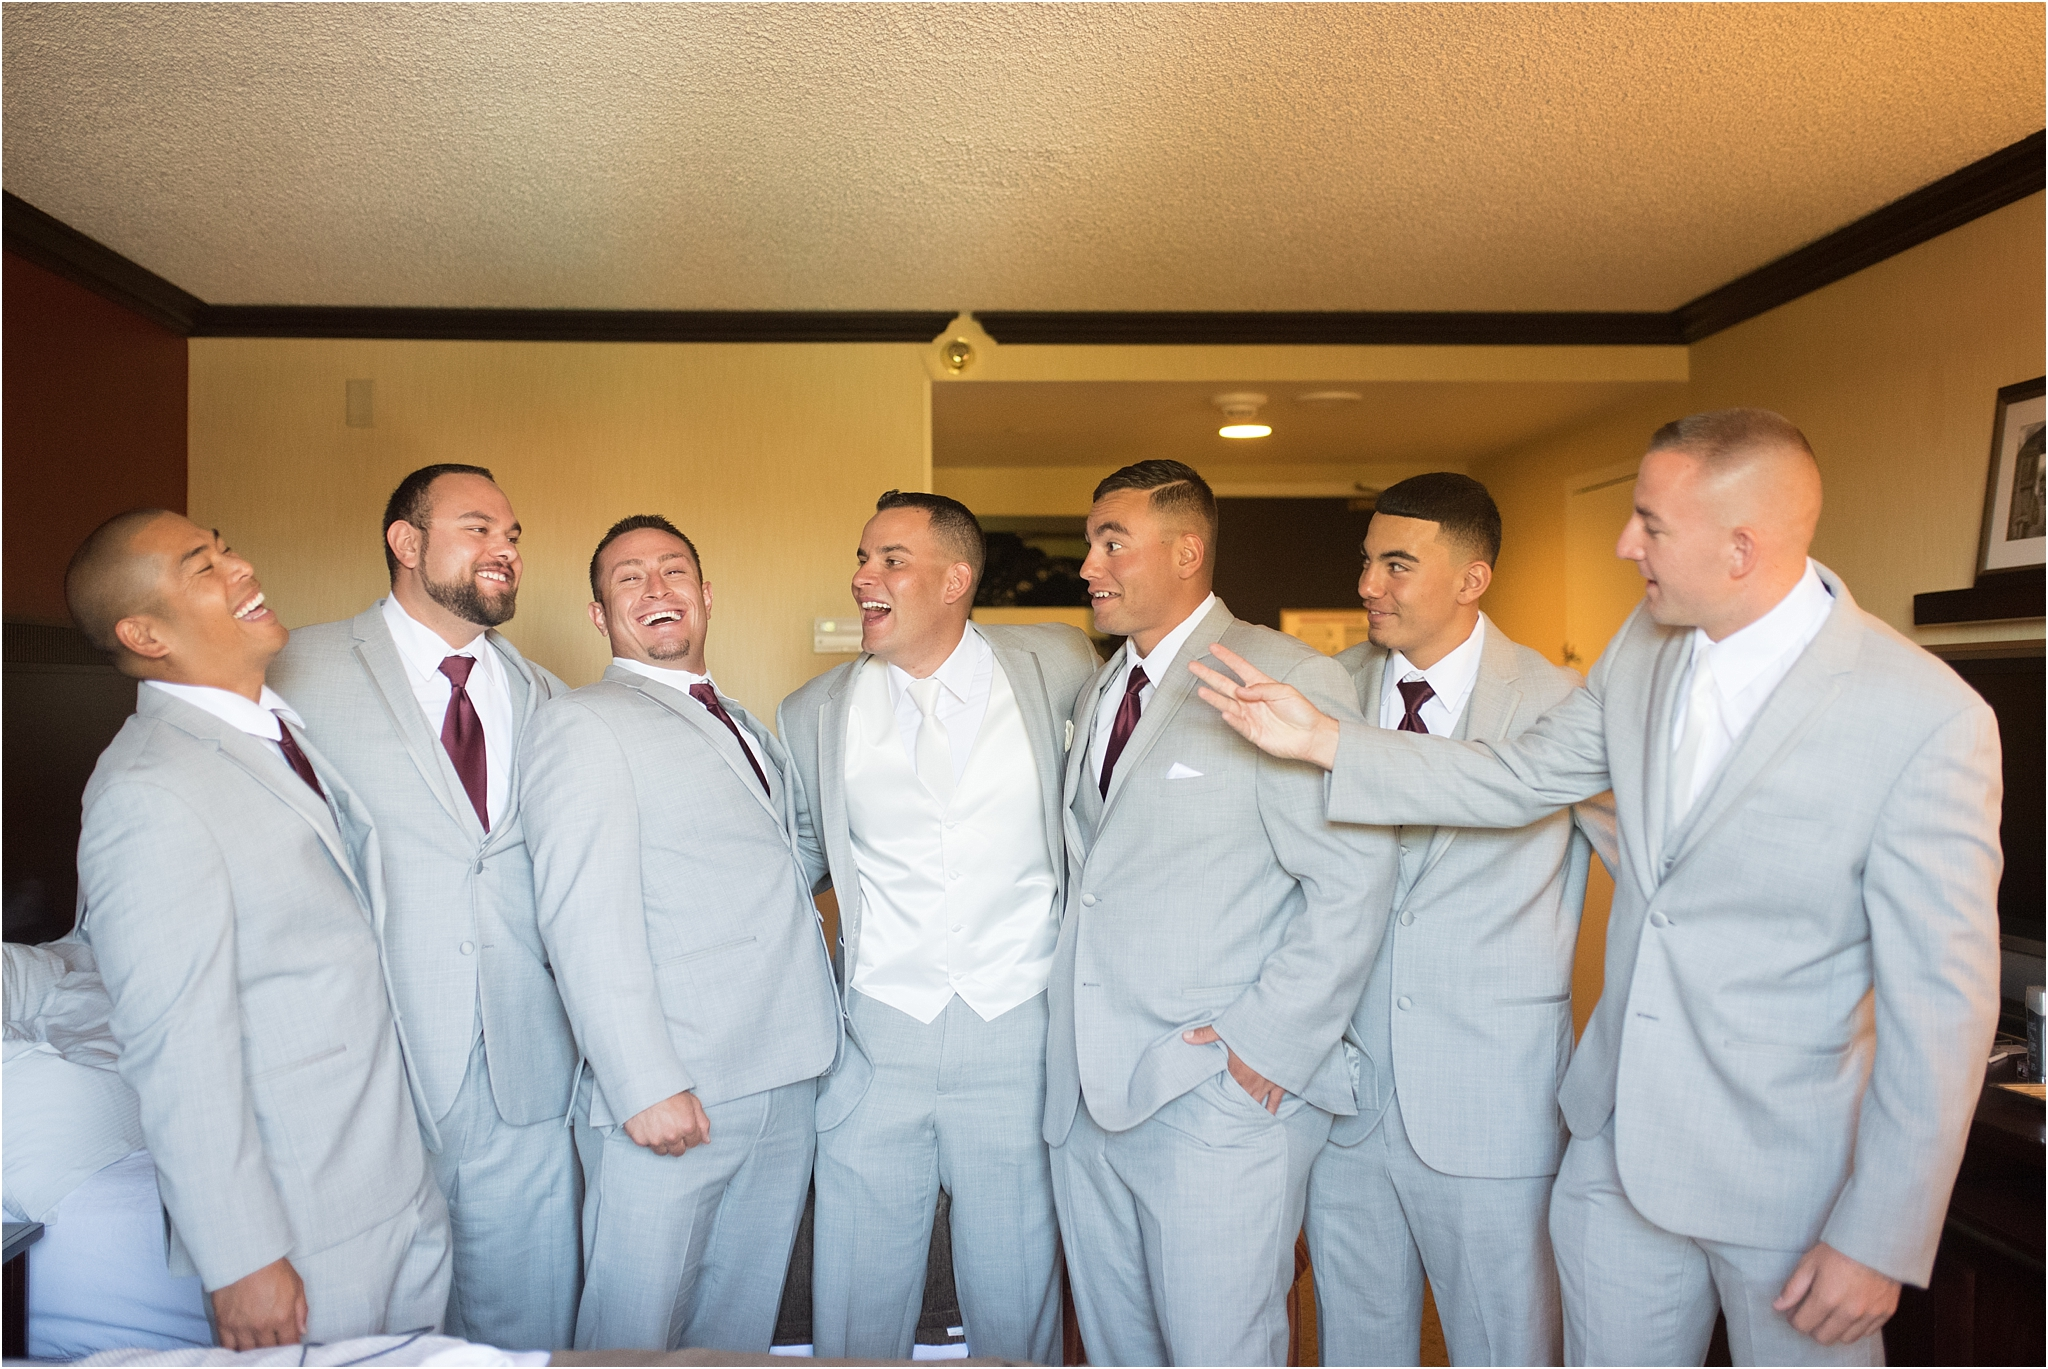 kayla kitts photography - albuquerque wedding photographer - new mexico wedding photographer - desination wedding photographer - cabo wedding photographer_0017.jpg